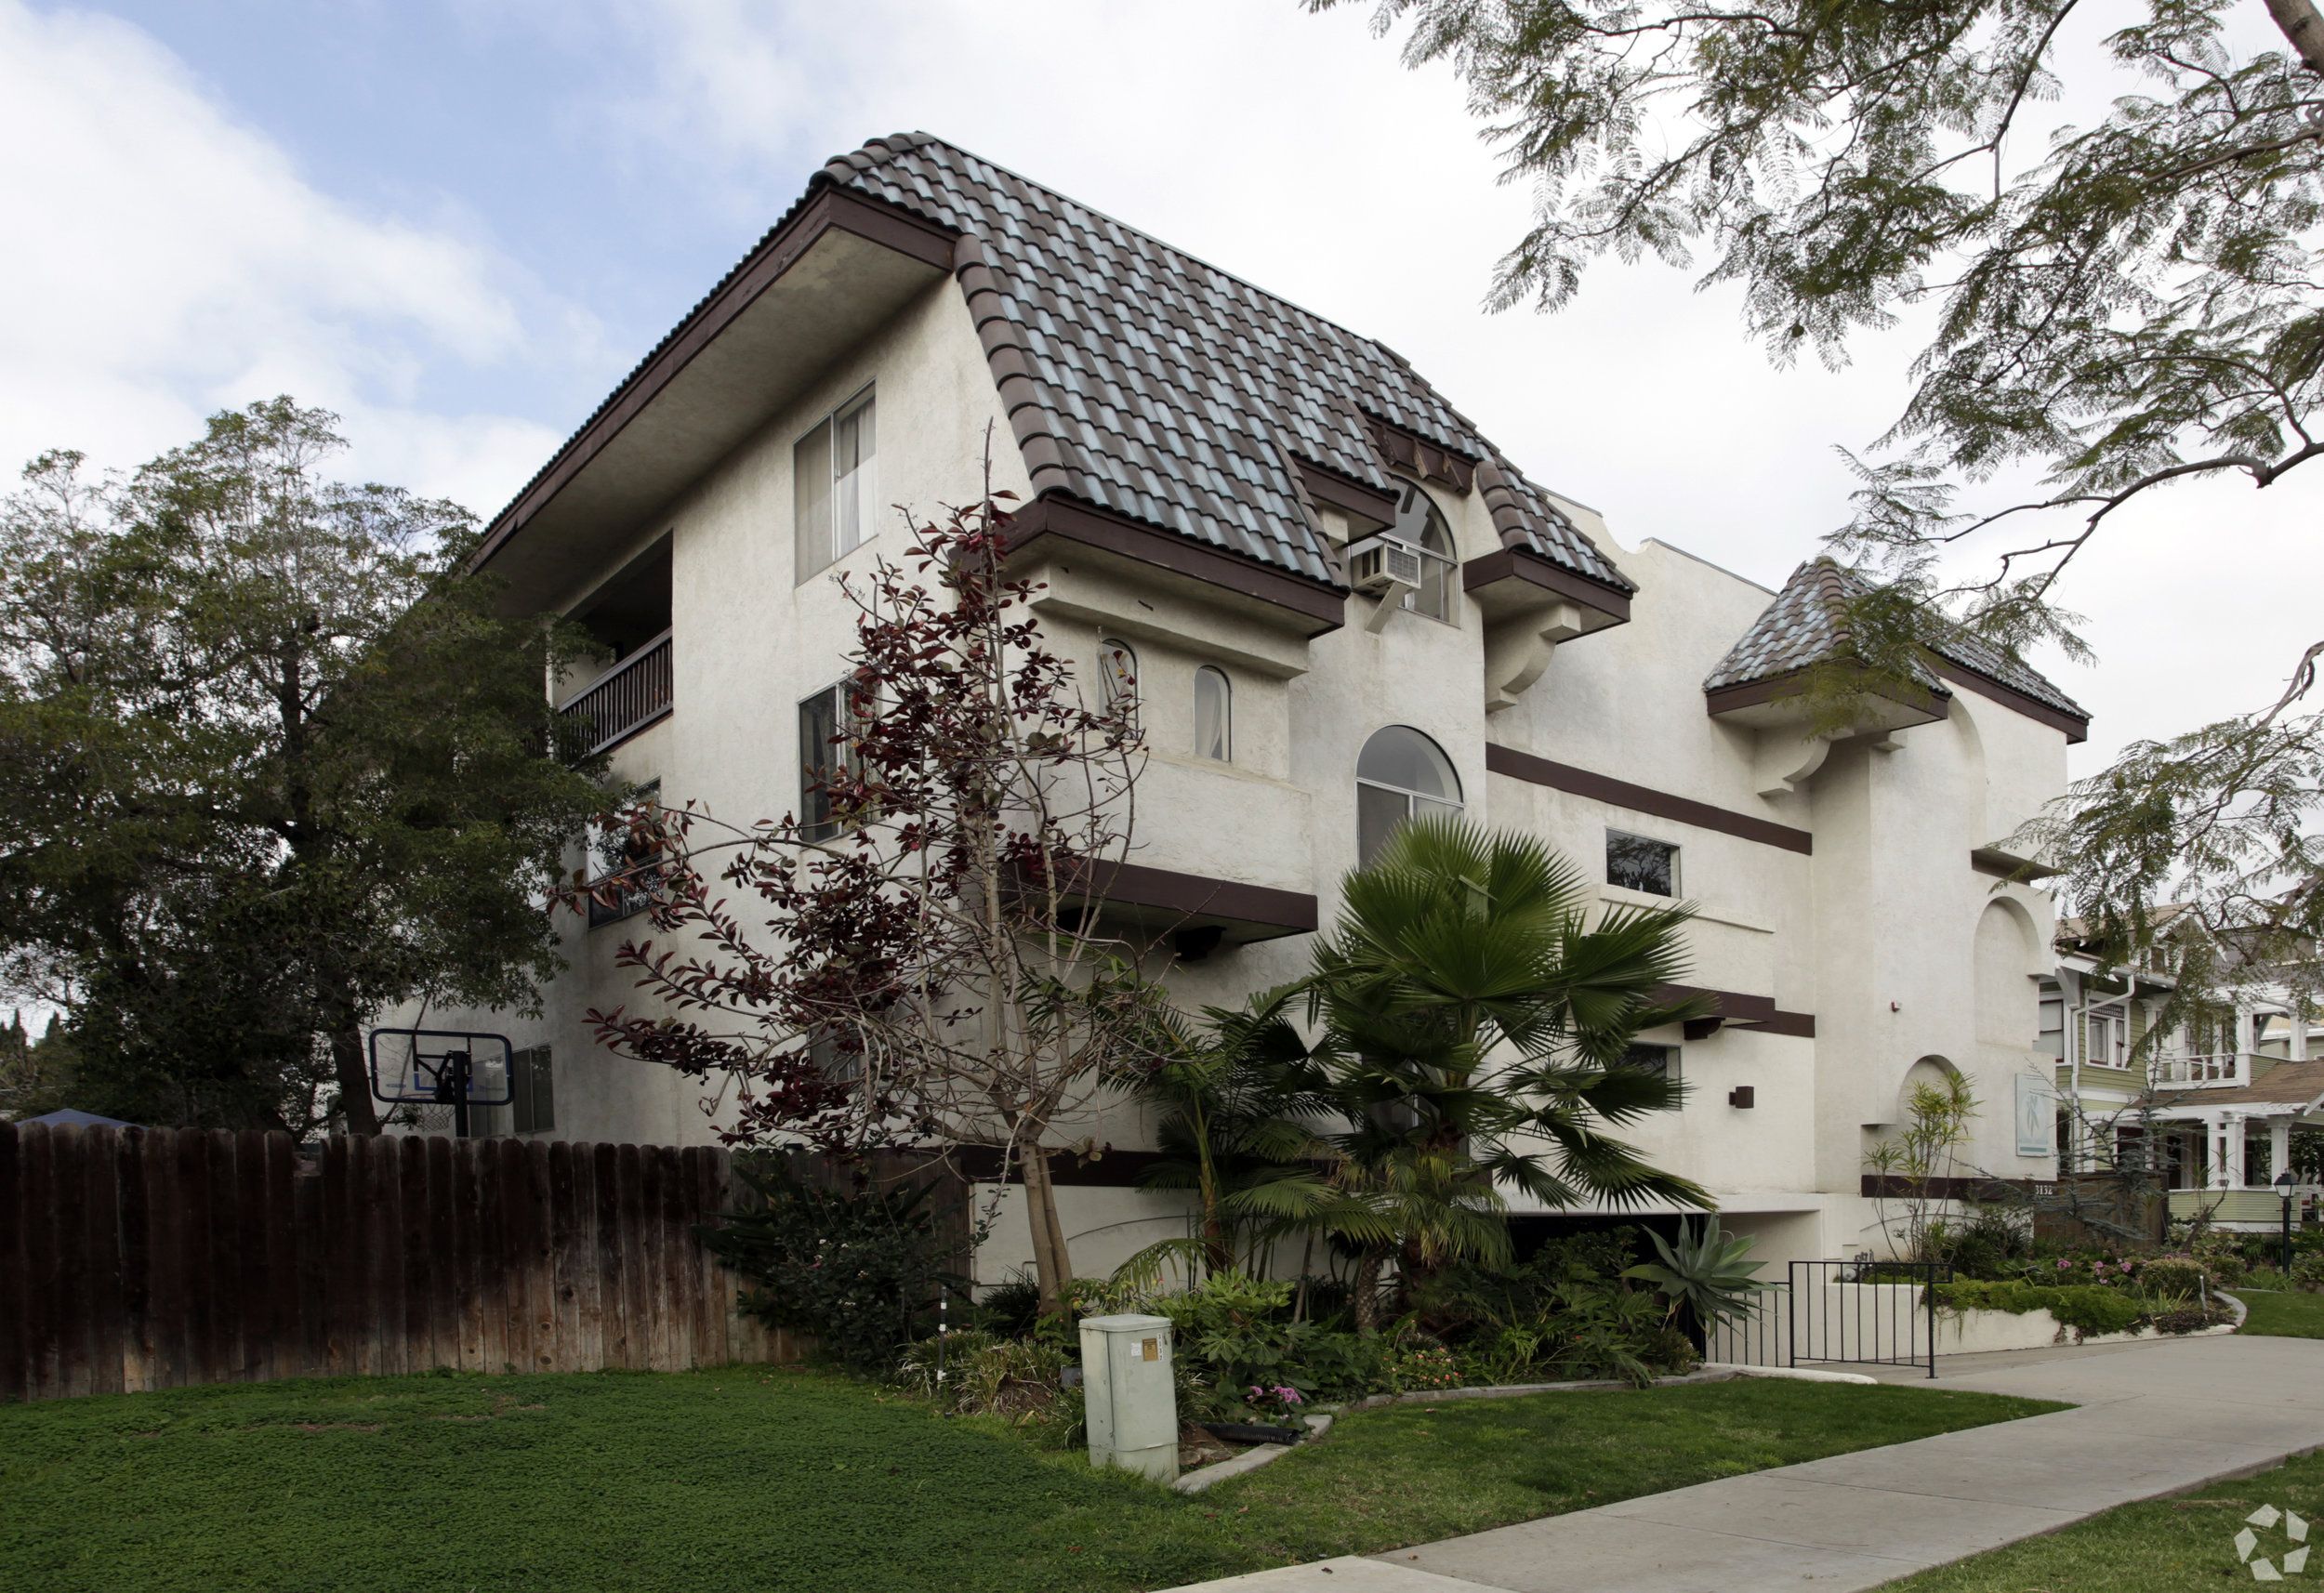 3132 3rd Avenue - Bankers Hill13 Units$3,892,000